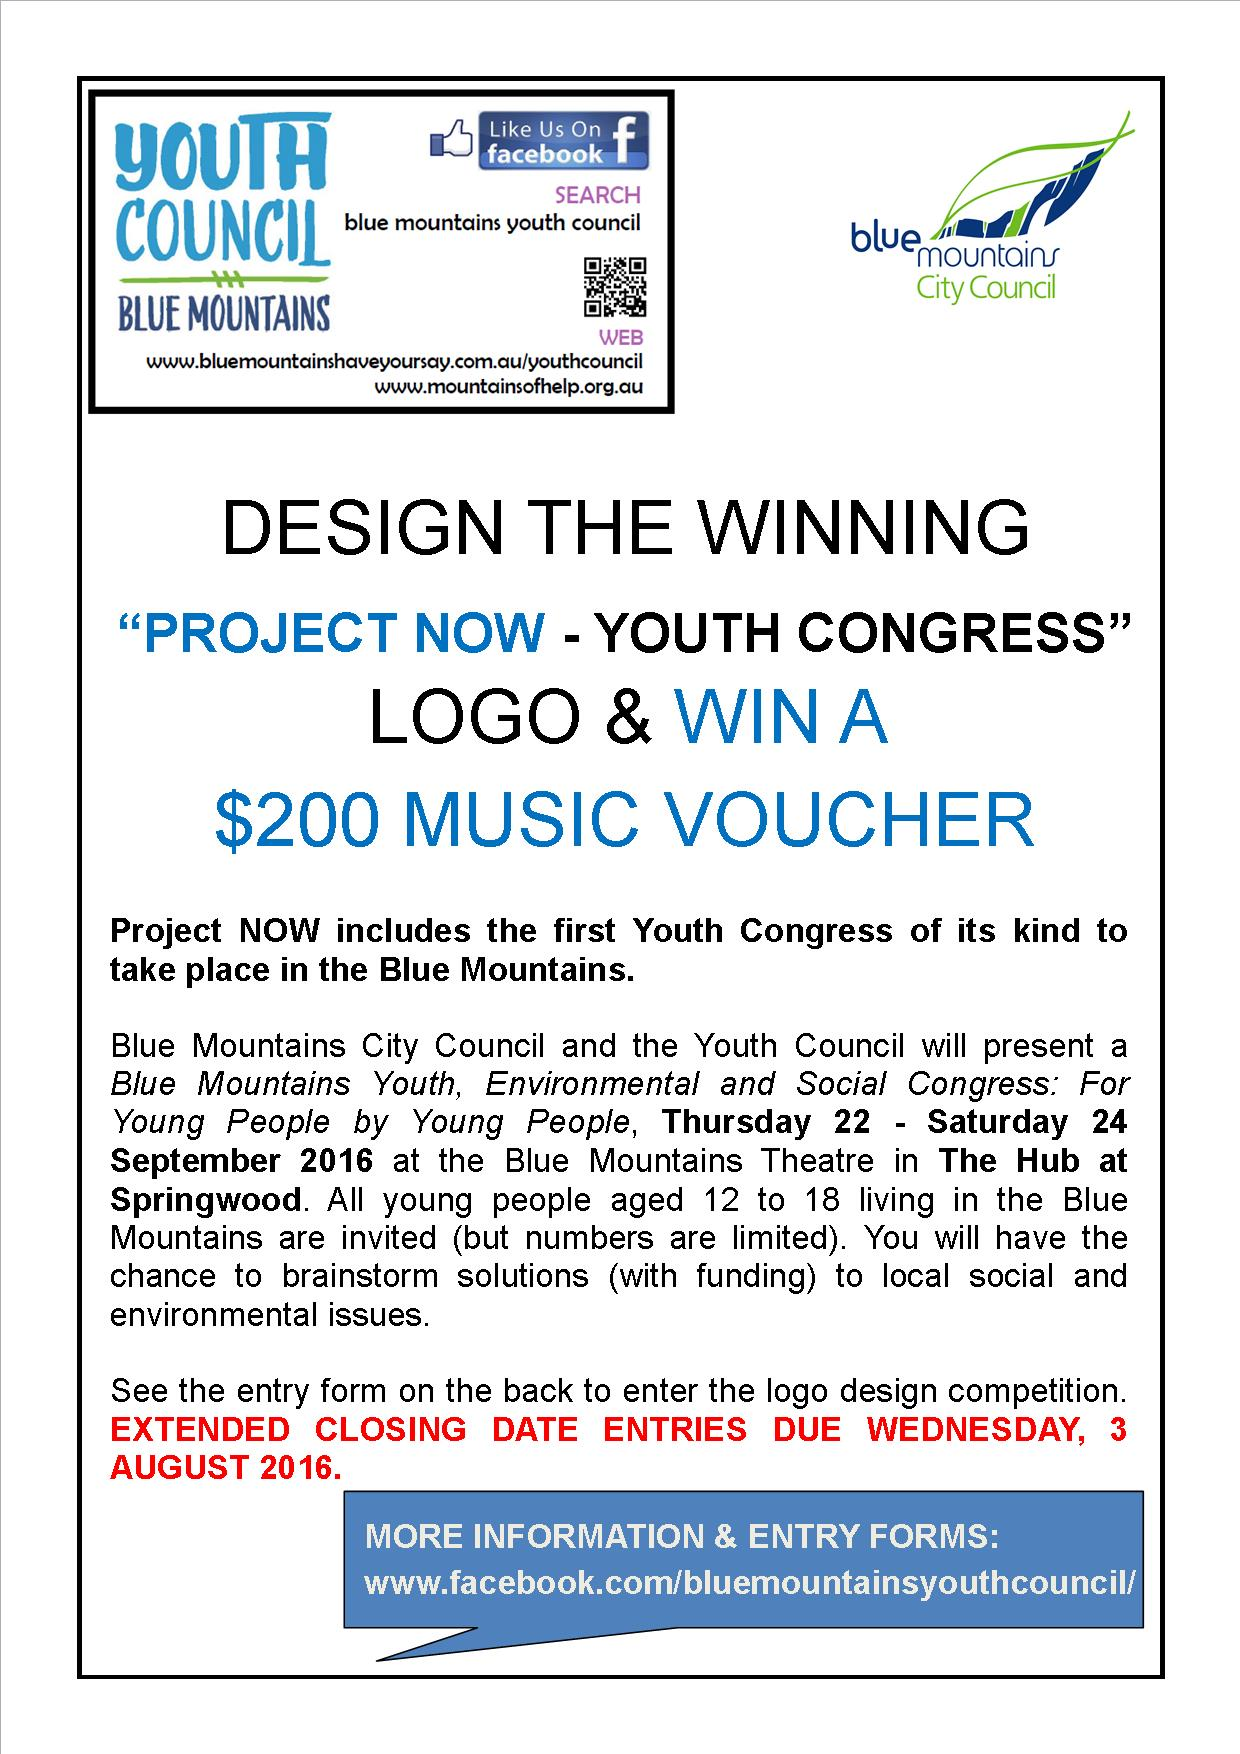 Project_now_youth_congress_-_logo_design_competition_extended_1